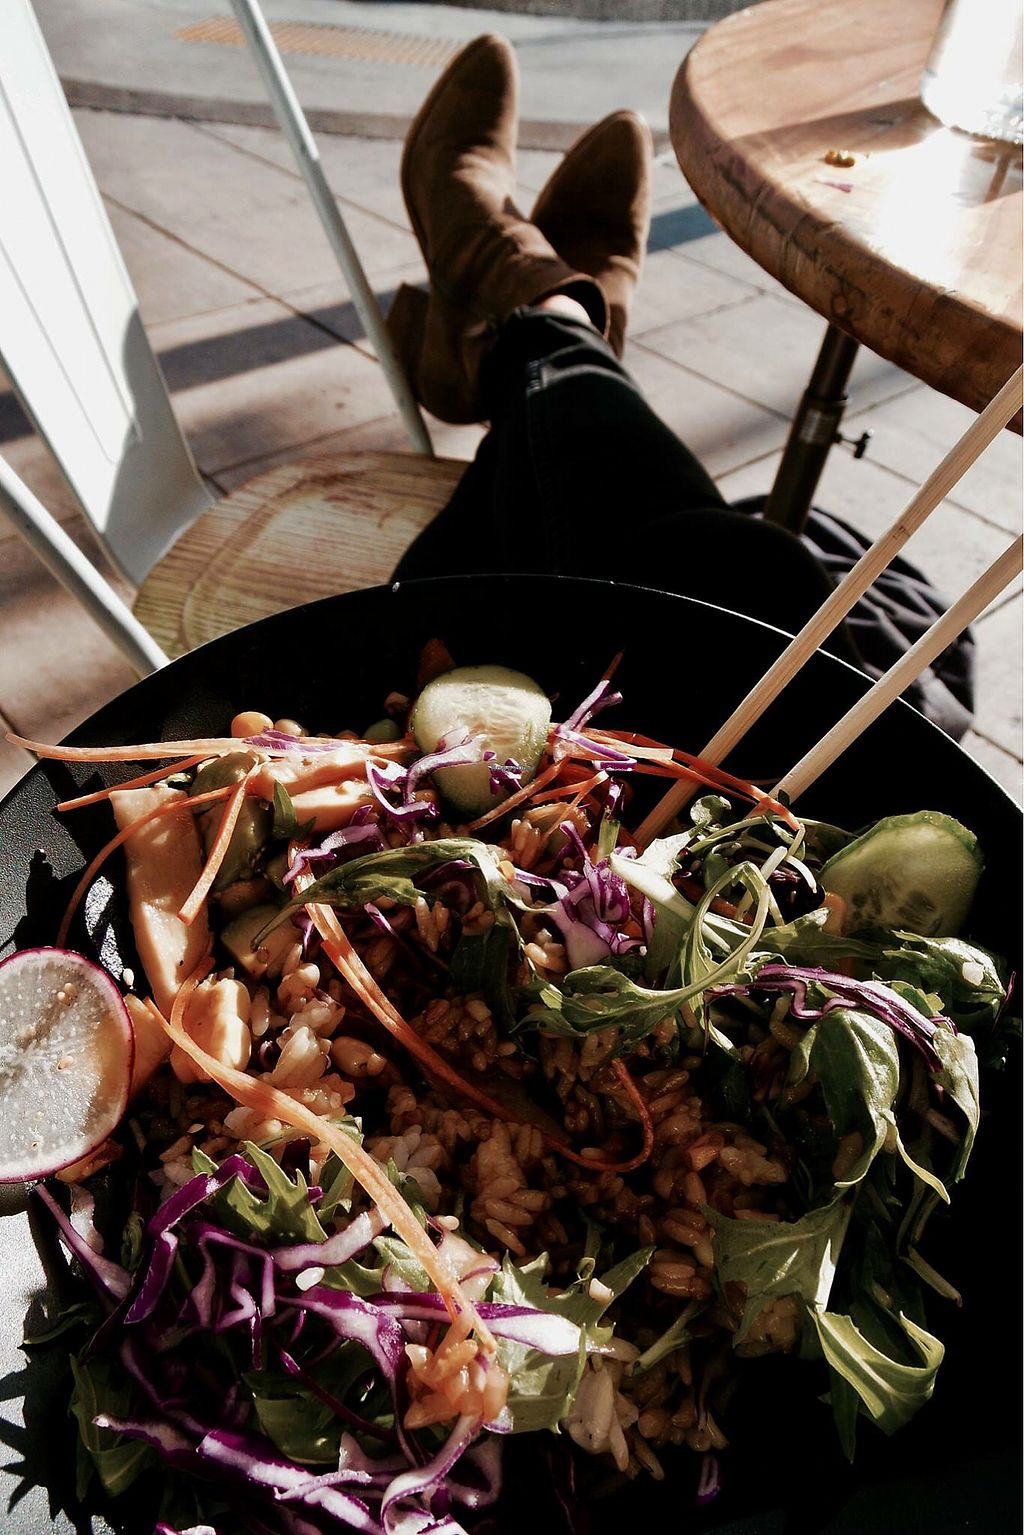 """Photo of Hachi Ramen  by <a href=""""/members/profile/KristinaDegreef"""">KristinaDegreef</a> <br/>The Vegan Poke Bowl  <br/> December 28, 2017  - <a href='/contact/abuse/image/106212/340186'>Report</a>"""